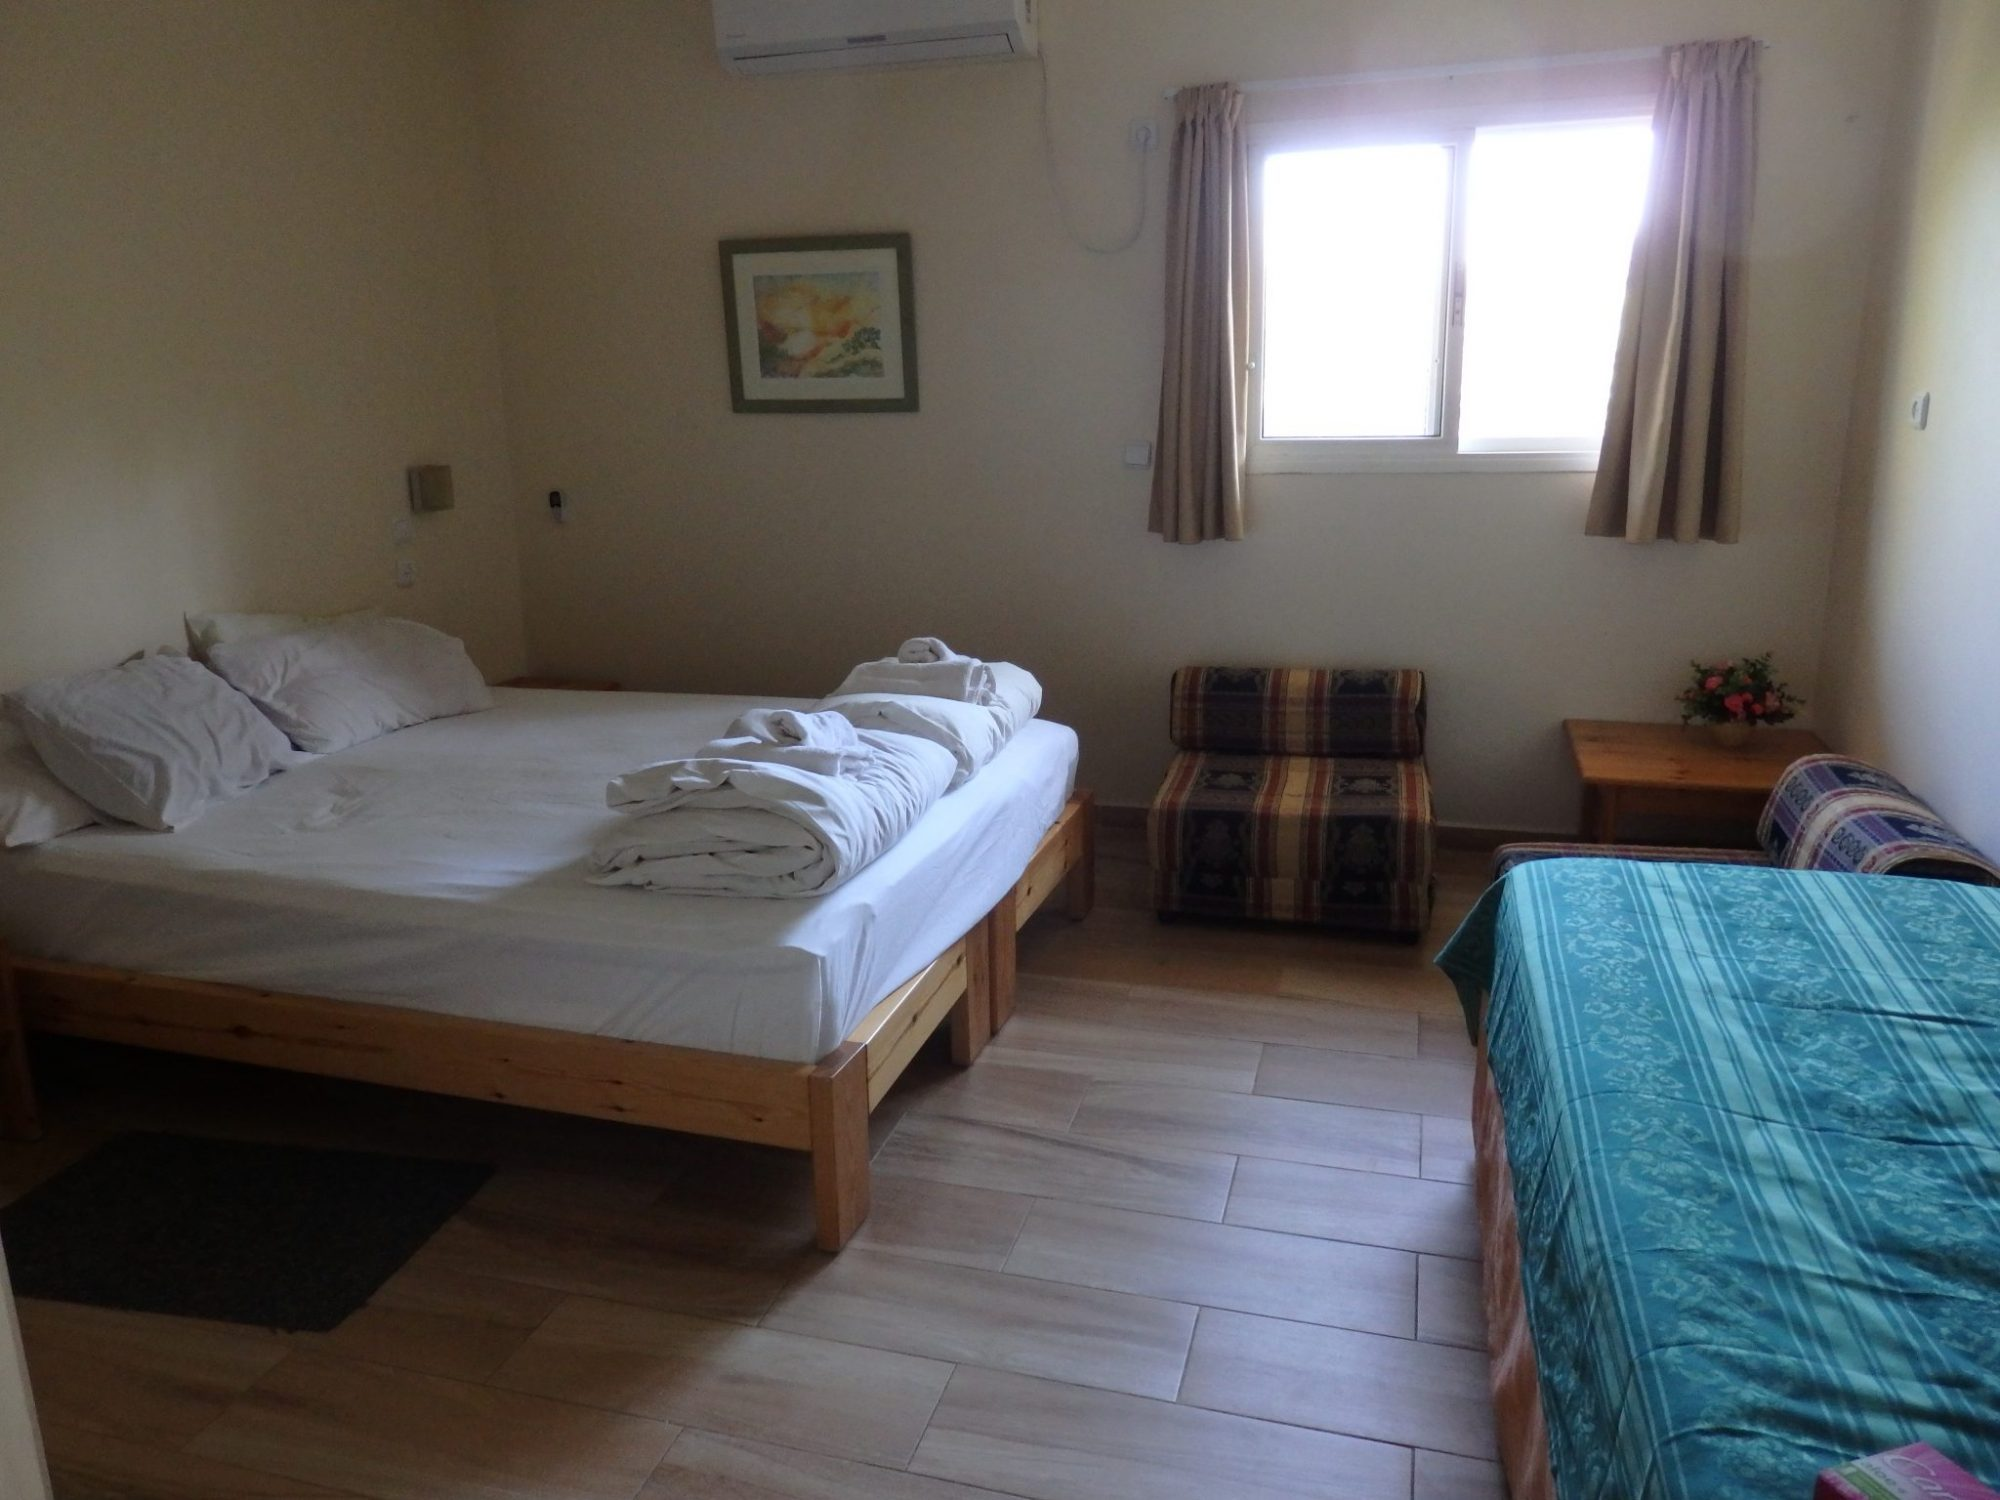 My room at Kibbutz Inbar, one of the ILH hostels in Israel